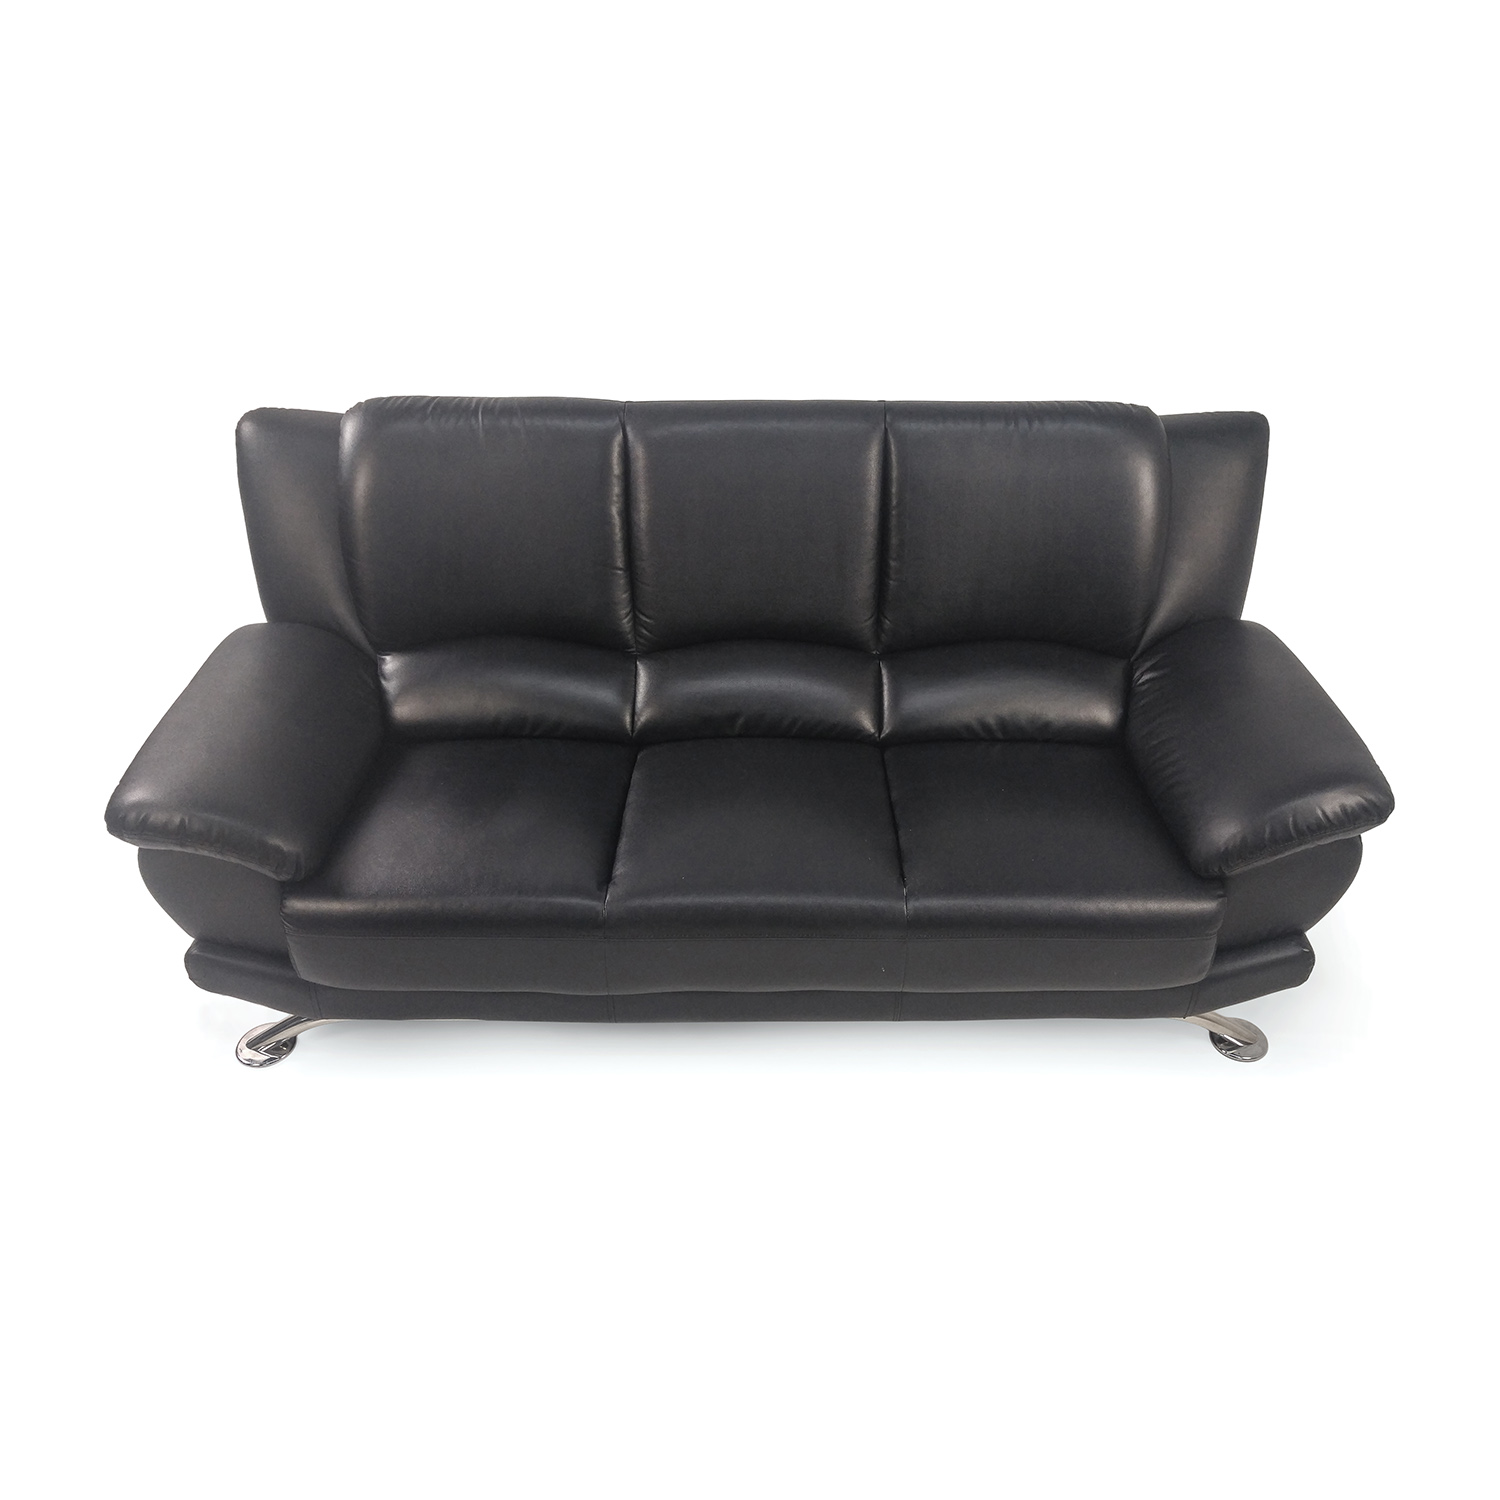 Used Black Leather Sofa Used Black Leather Reclining Sofa Kendrys Furniture Hardly Used 2